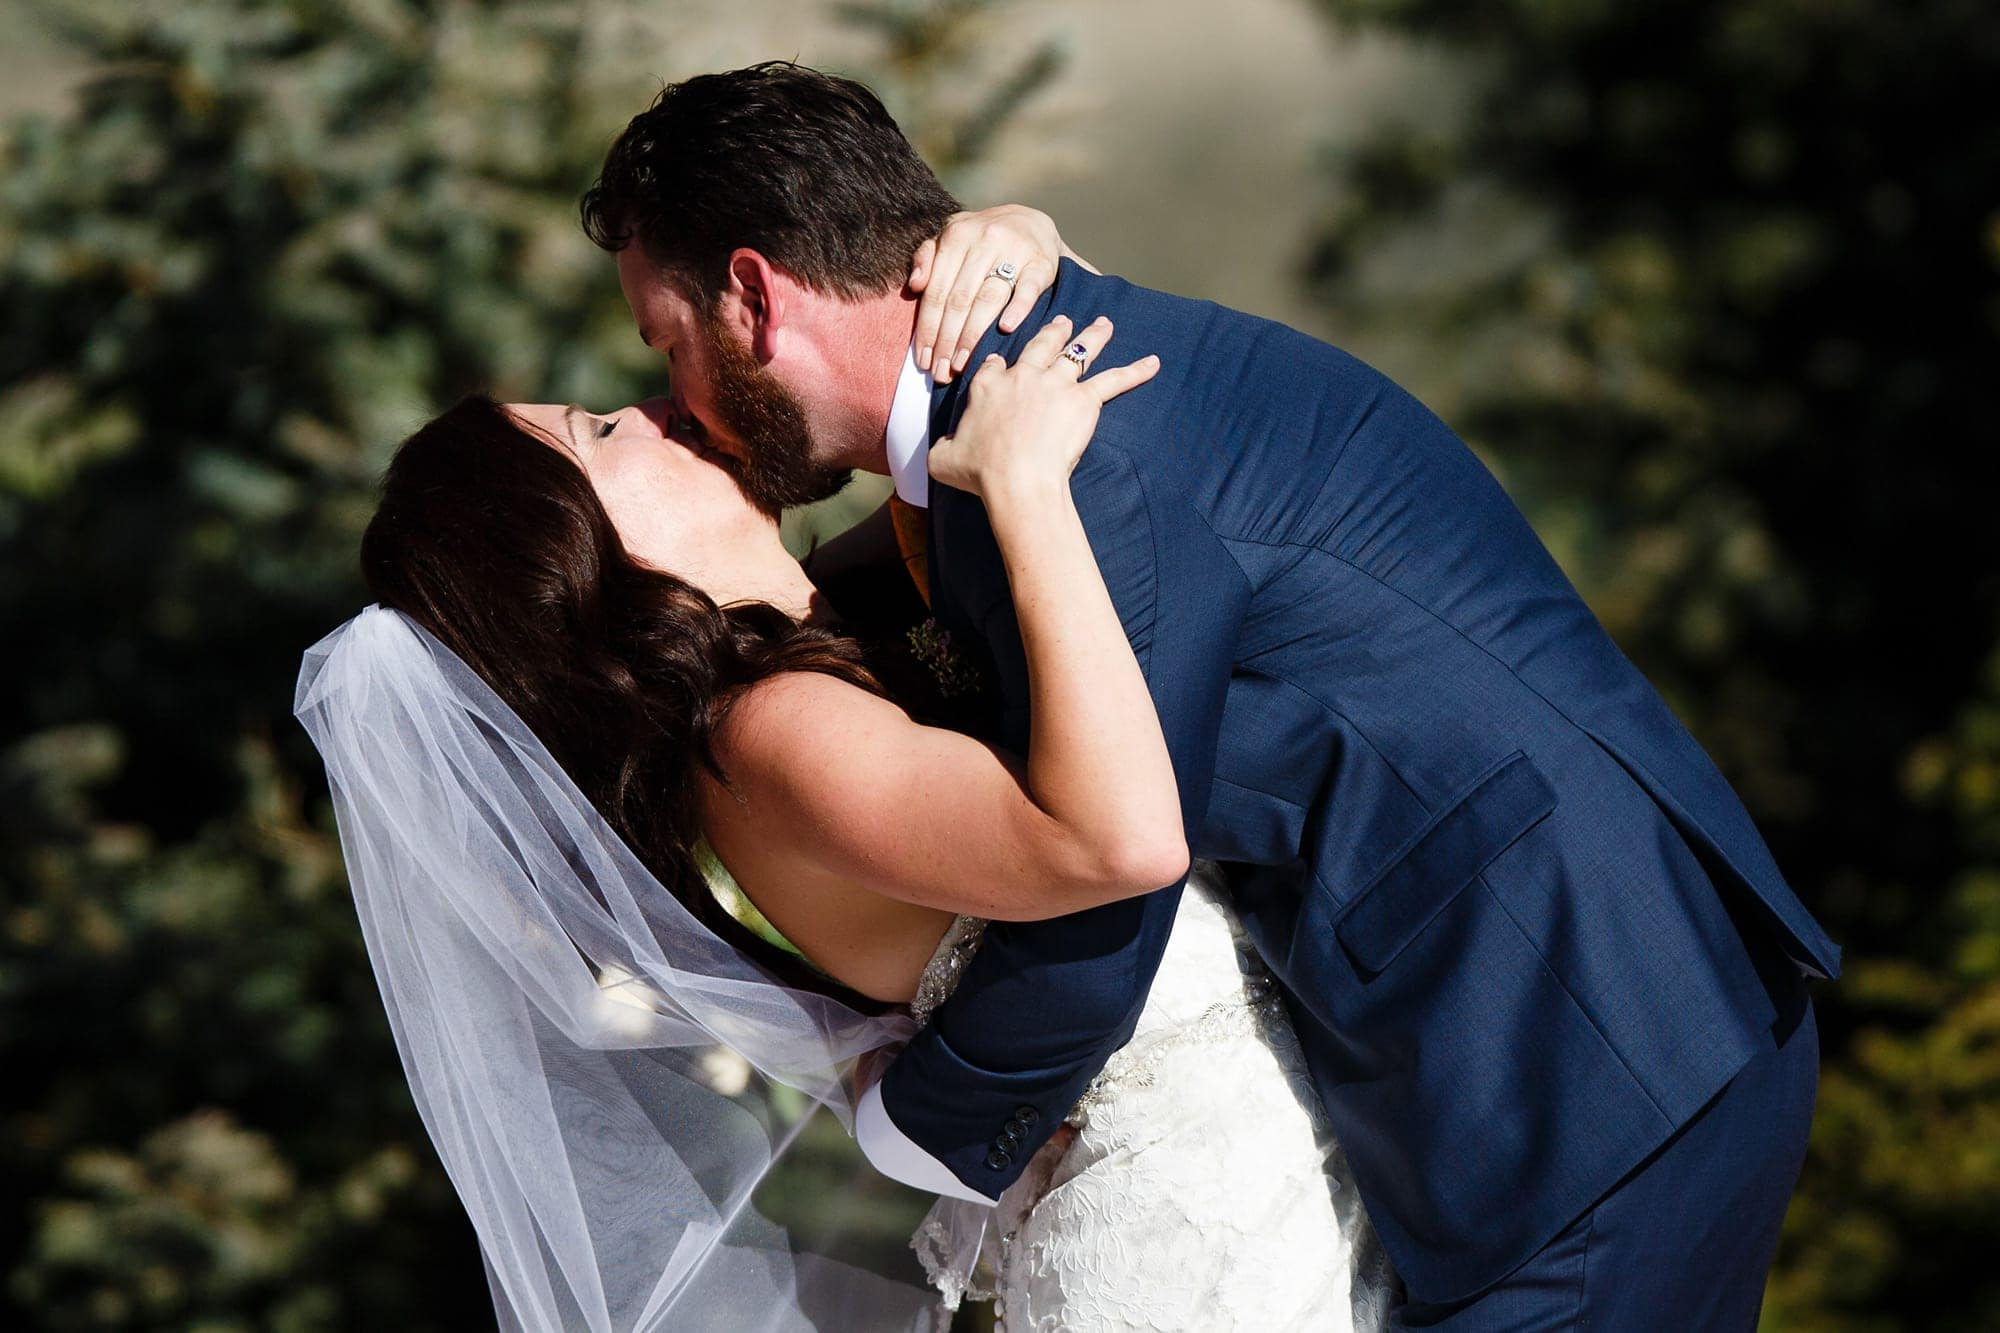 Blake and Gina share a first kiss during the ceremony